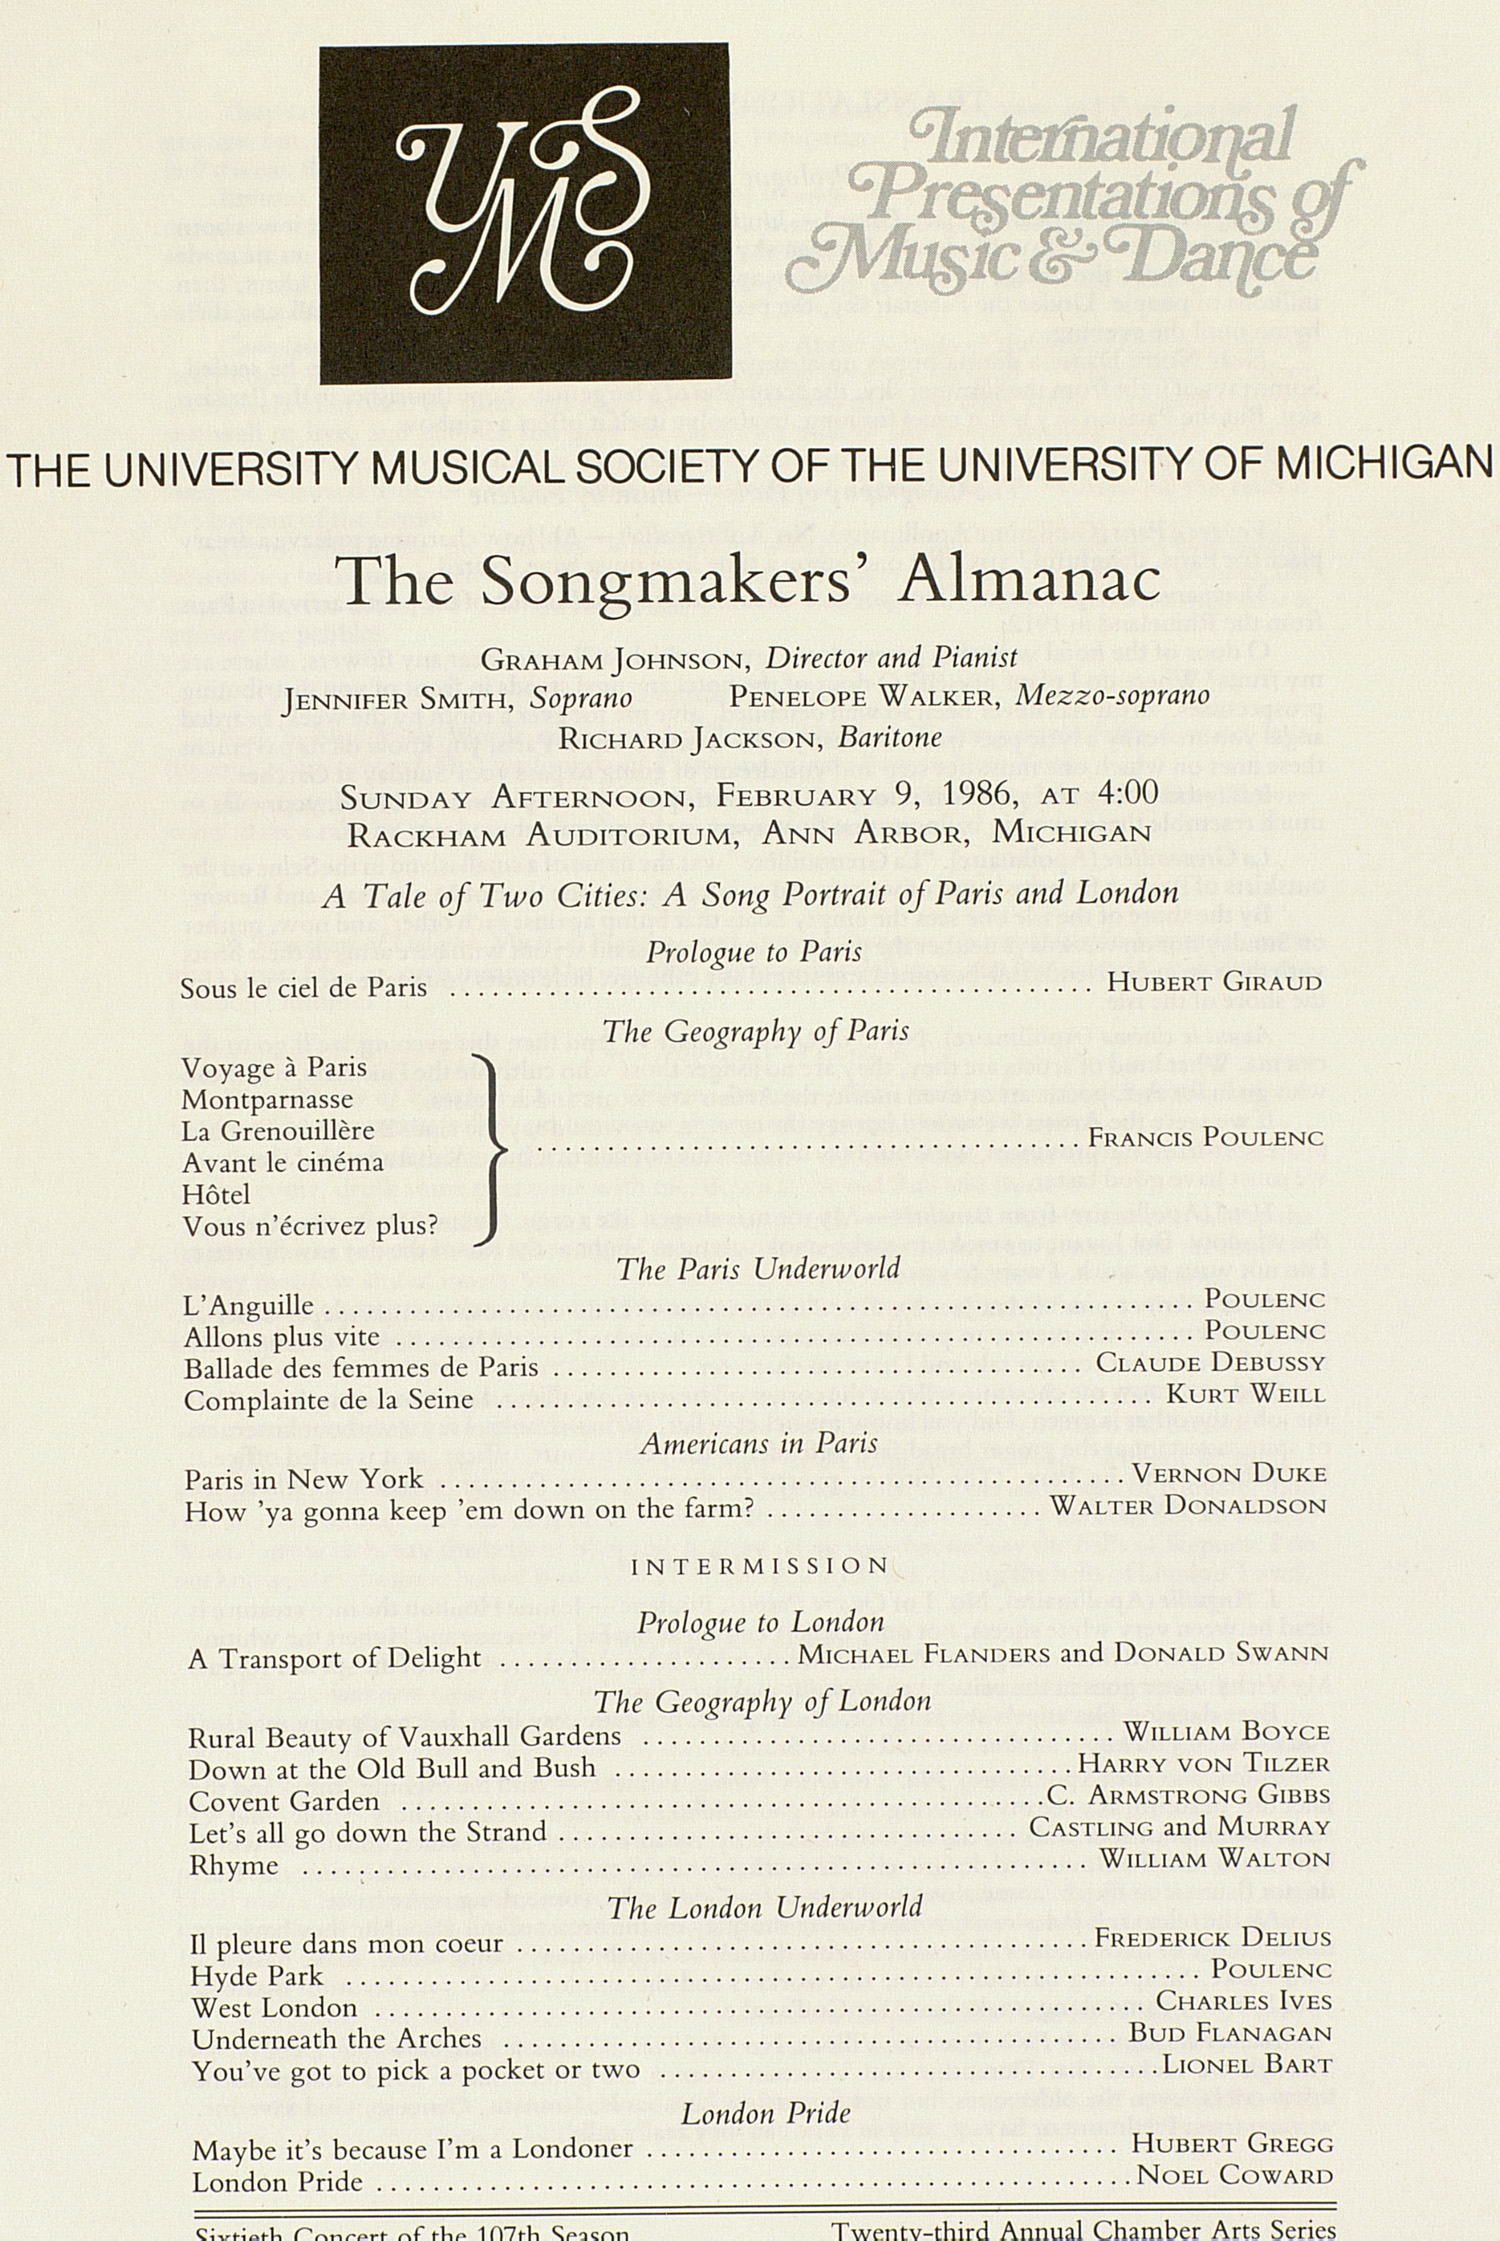 UMS Concert Program, February 9, 1986: The Songmakers' Almanac --  image